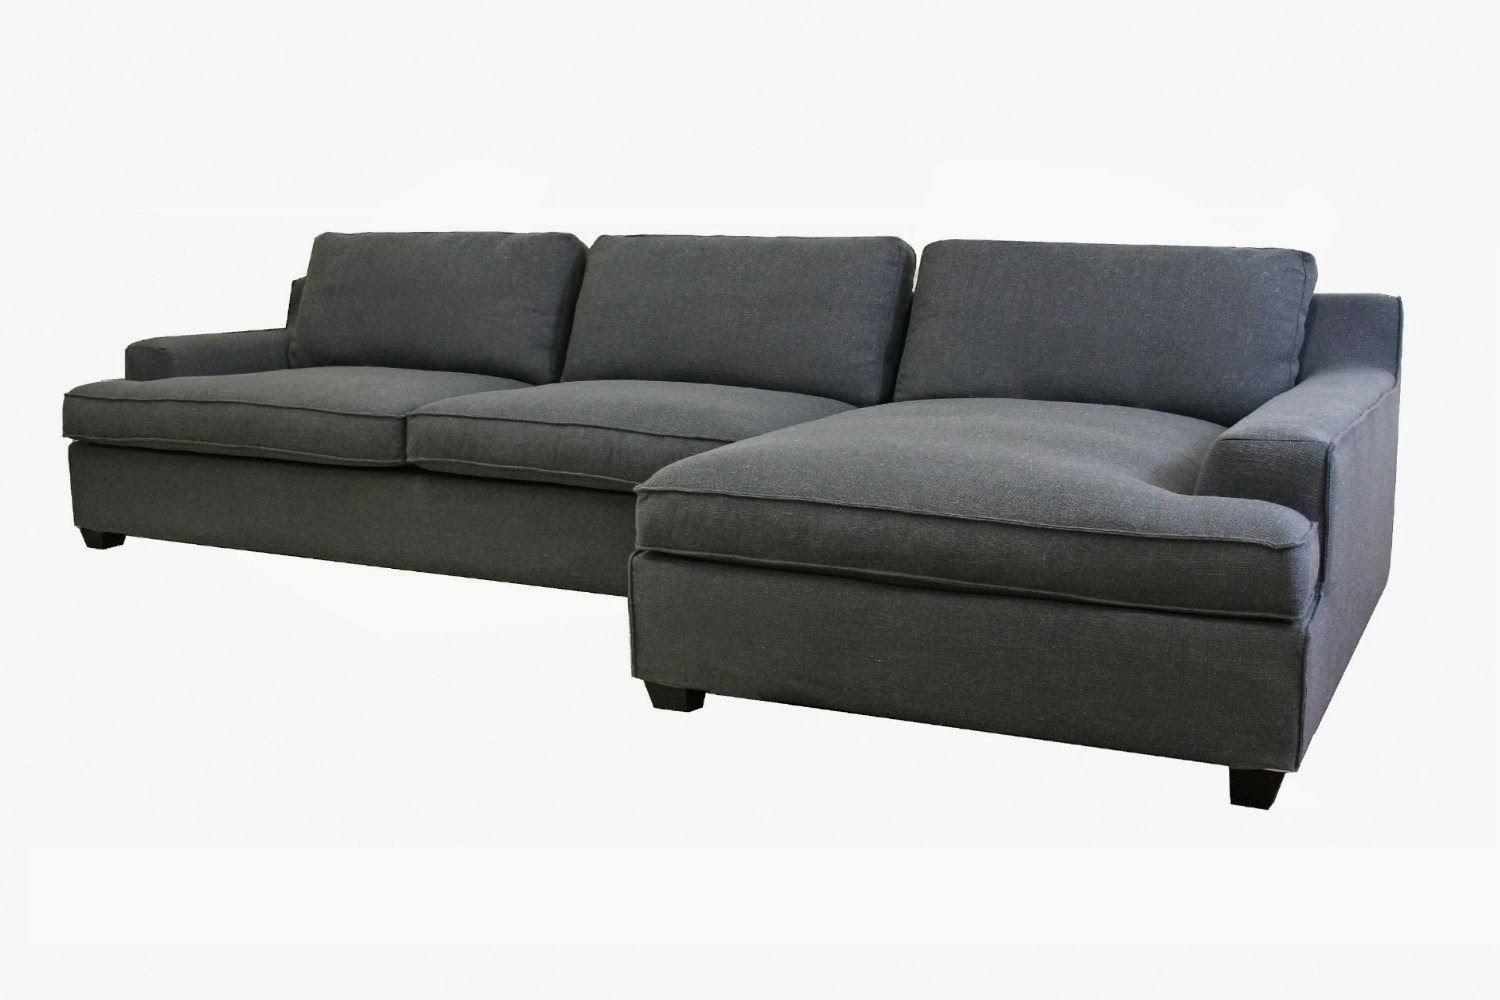 Cheap Reclining Sofas Sale England Sleeper Sectional Sofa Home Gallery